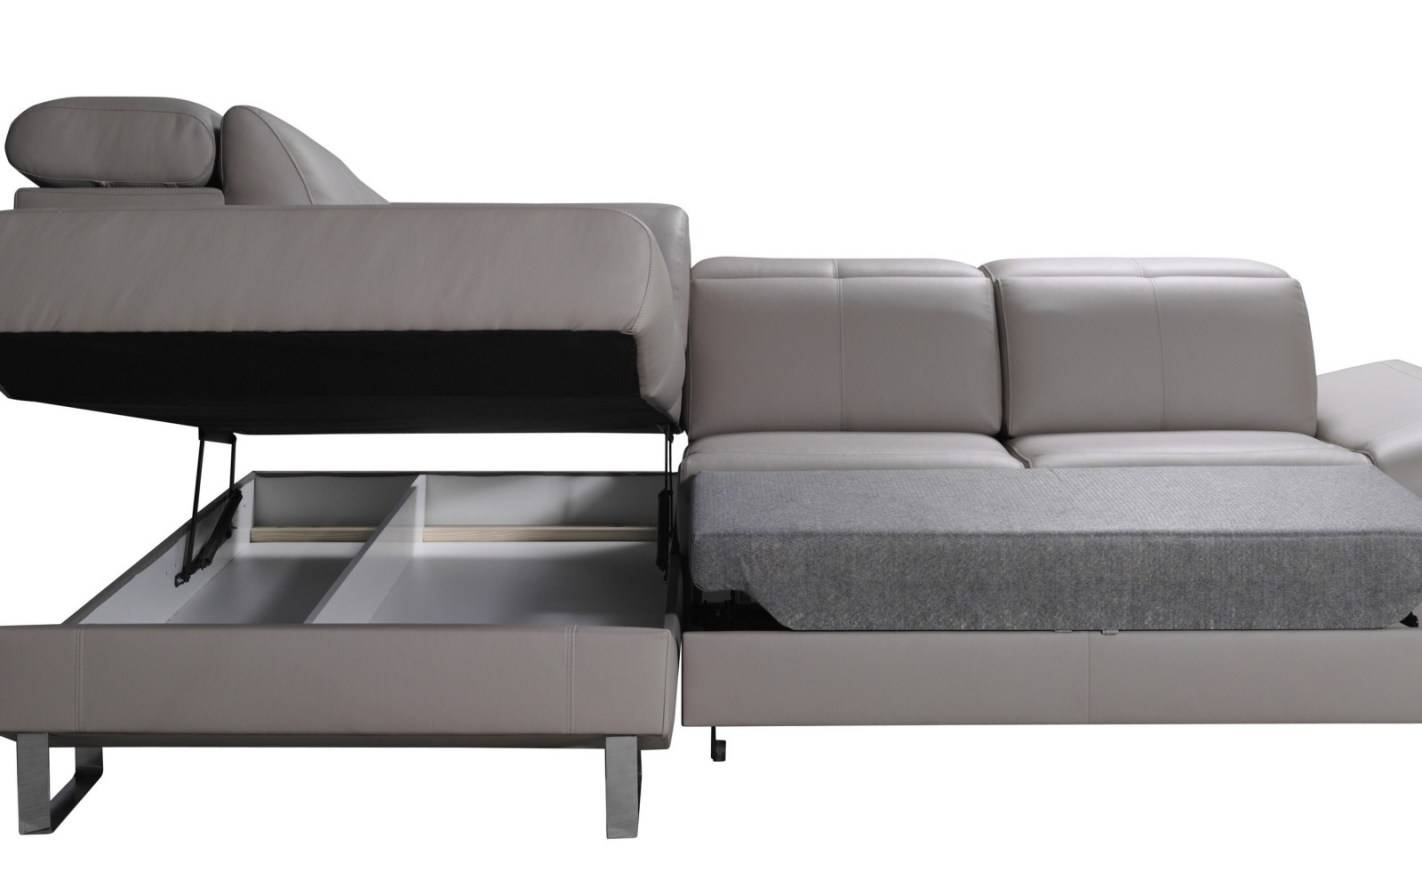 Dazzle Sleeper Sofa Bed Bar Shield Queen Size Tags : Sleeper Sofa throughout Sofa Beds Bar Shield (Image 8 of 15)